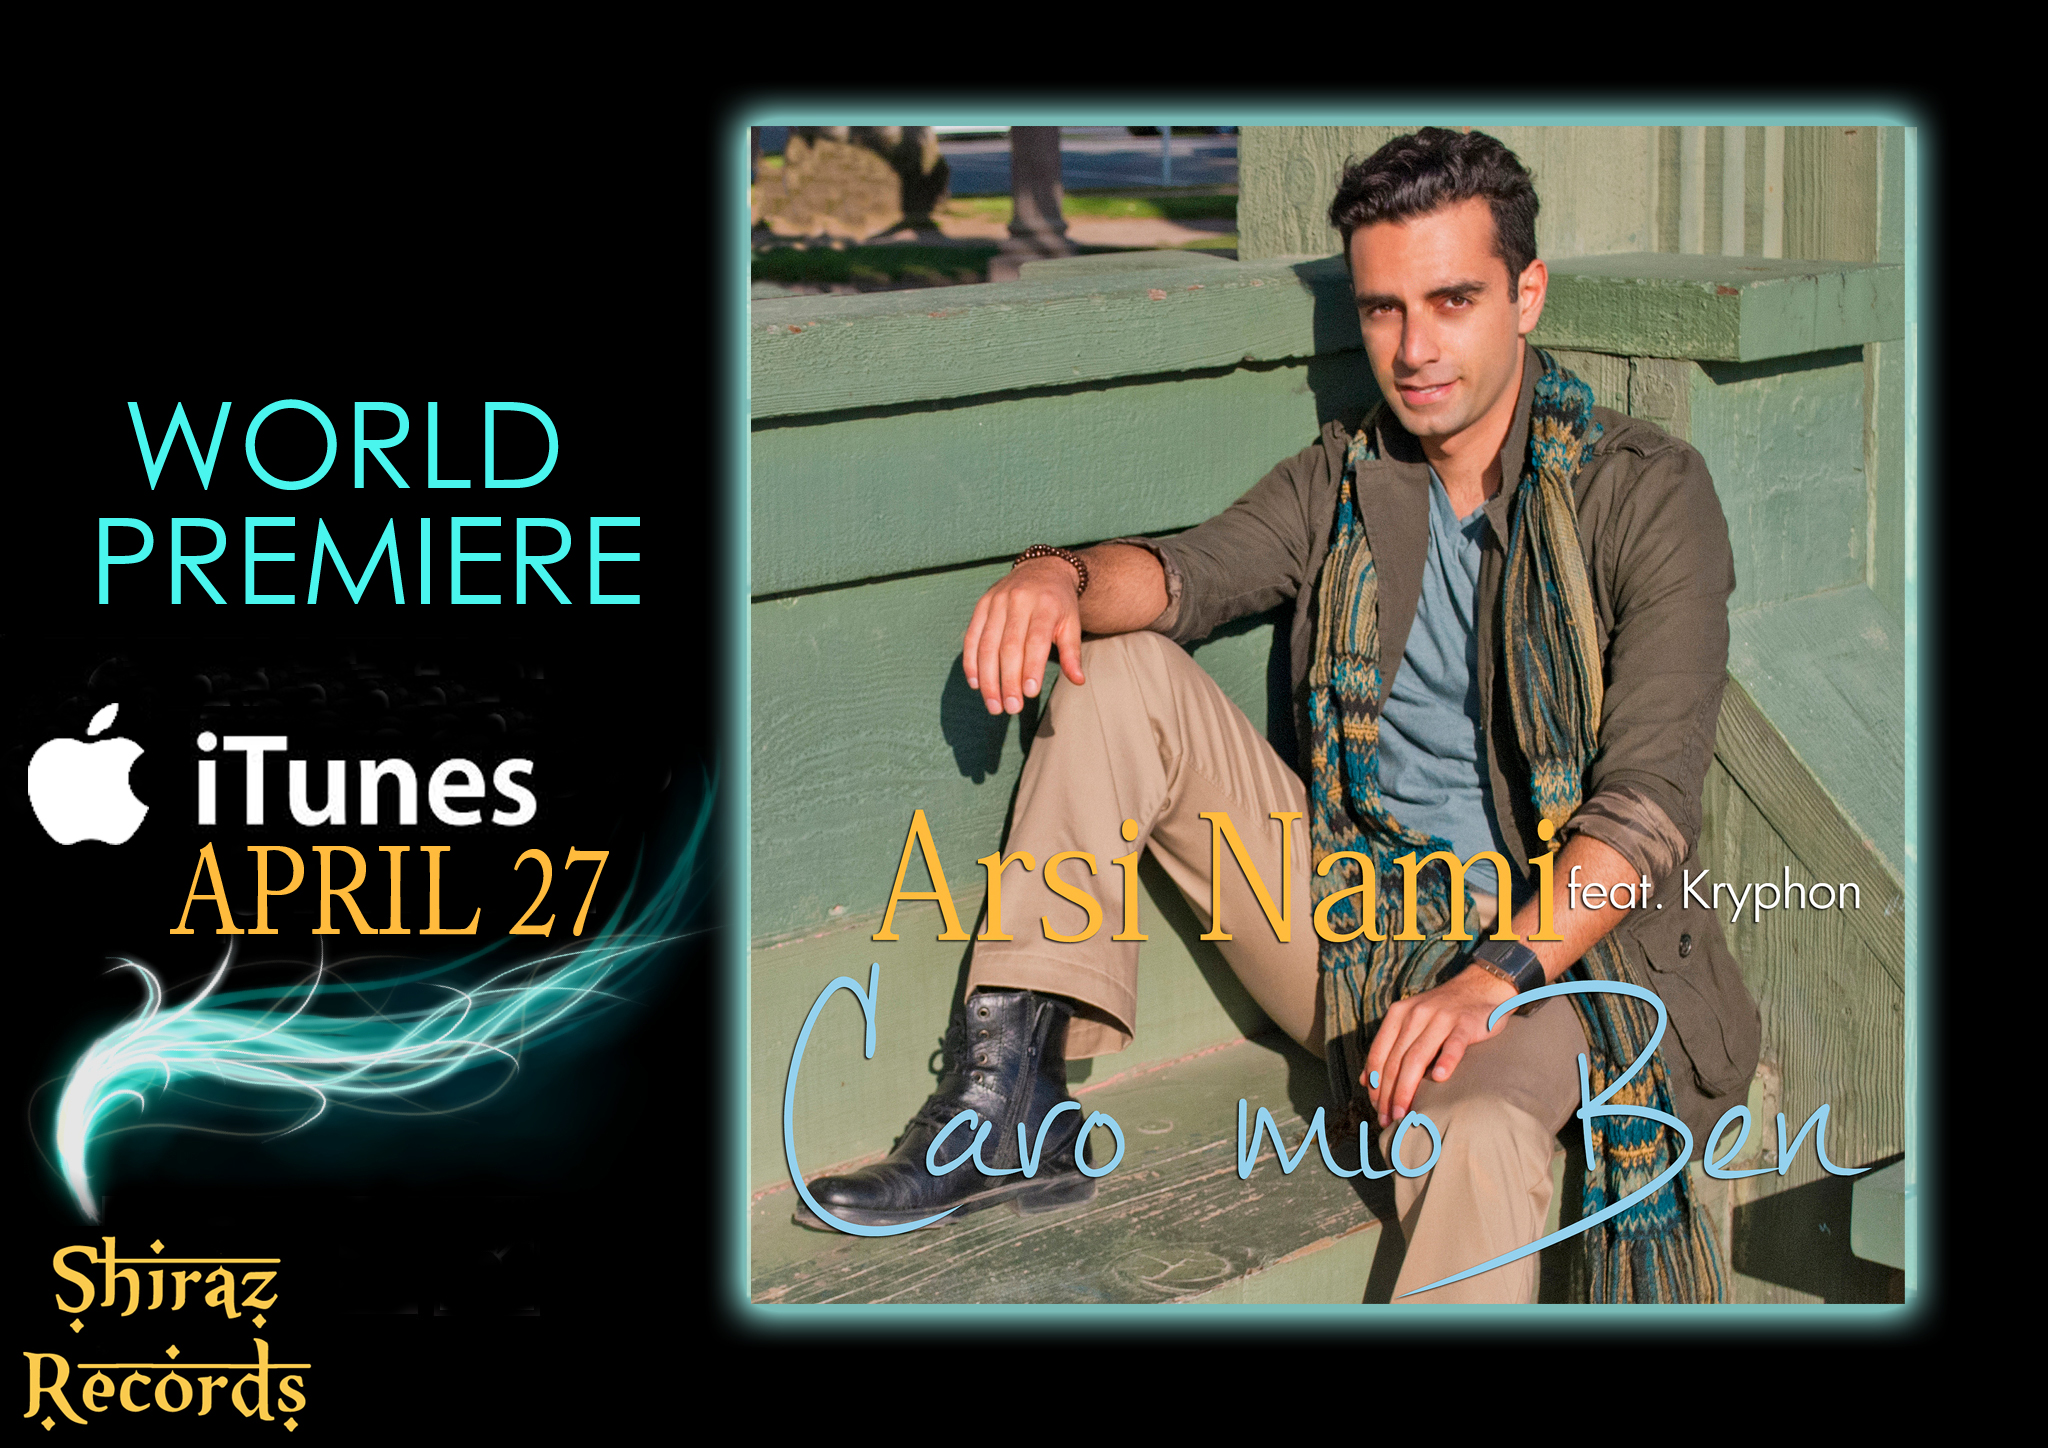 Flickr - World Premiere April 27, 2013 - Caro Mio Ben - Arsi Nami feat.jpg